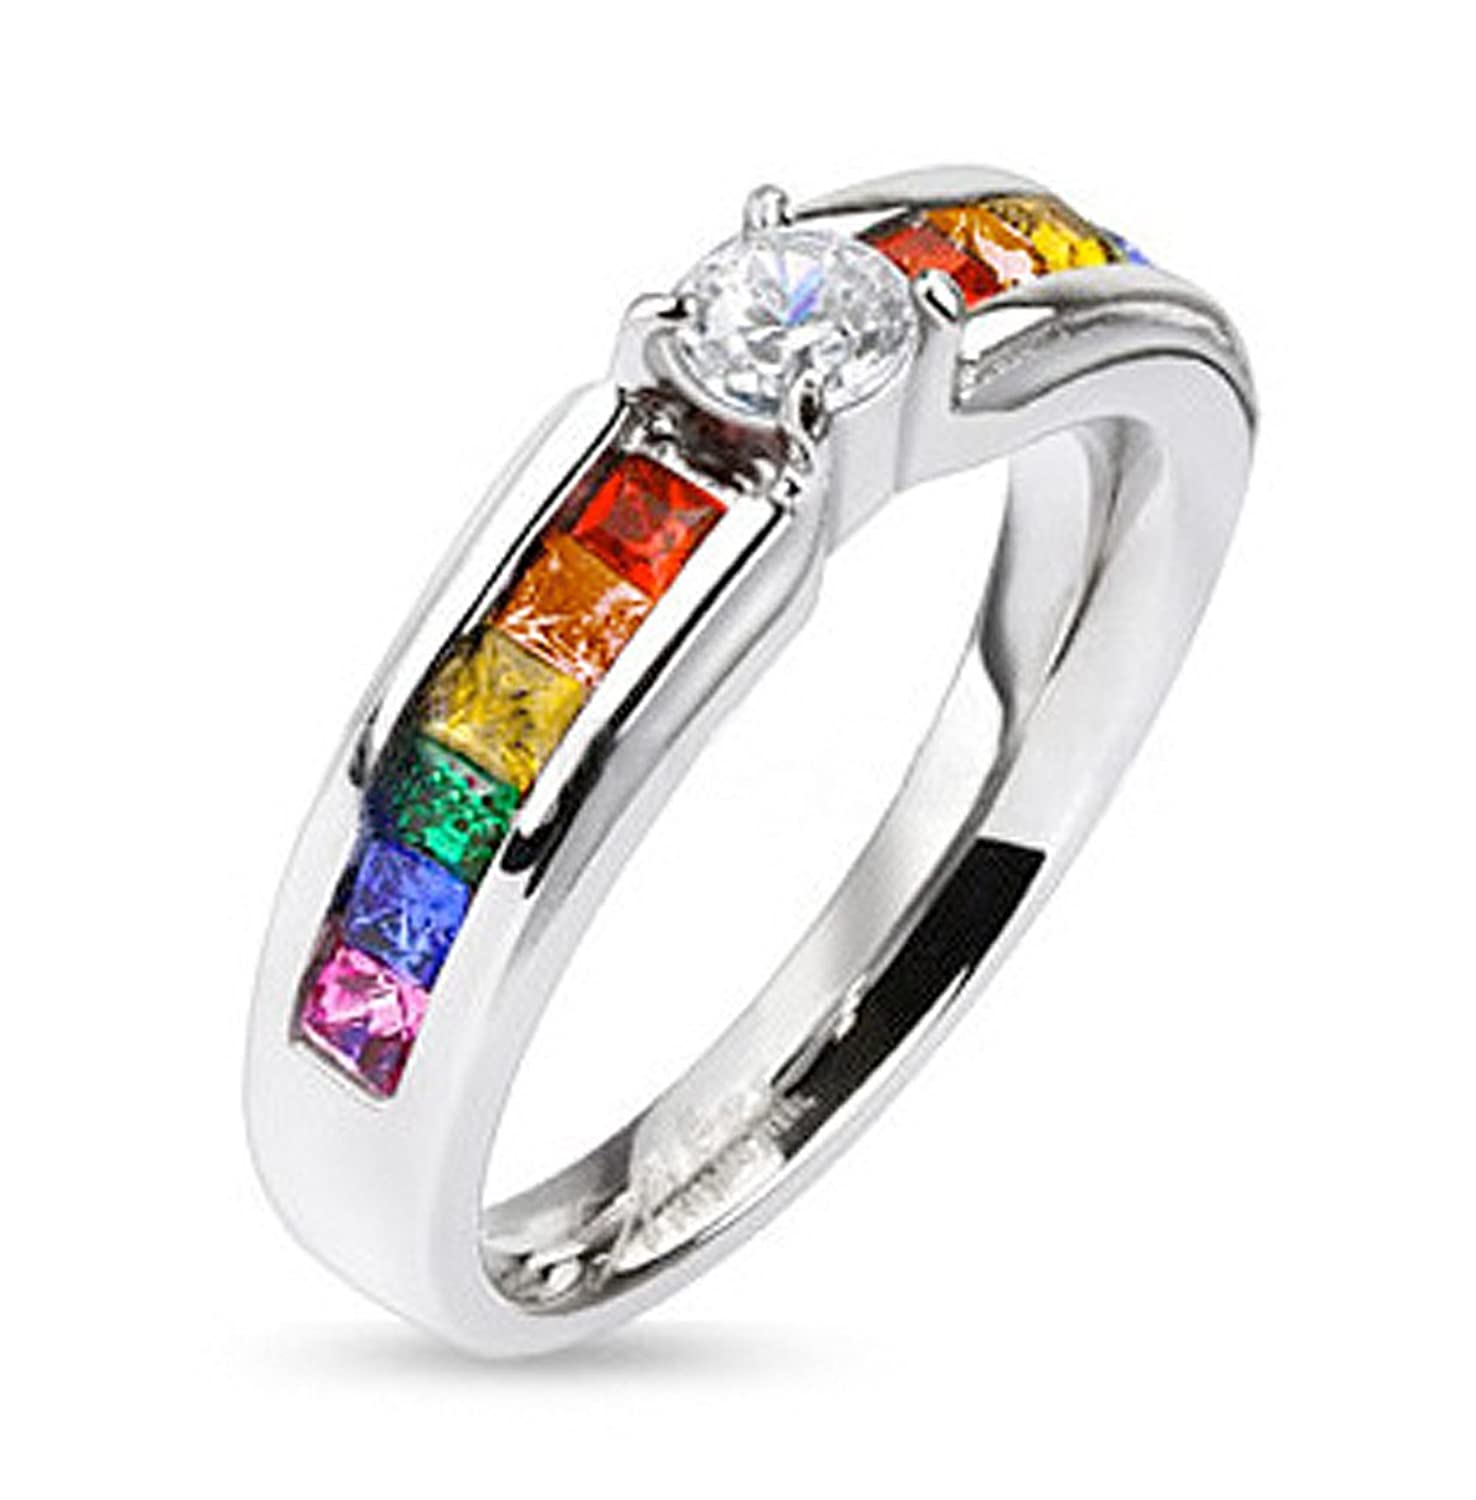 seen is wedding sapphires observer a multicolor surrounded creative center karat stone of with bespoke color yellow engagement ring lilykamper before in by s all you pink rainbow t lily kamper sapphire haven rings set